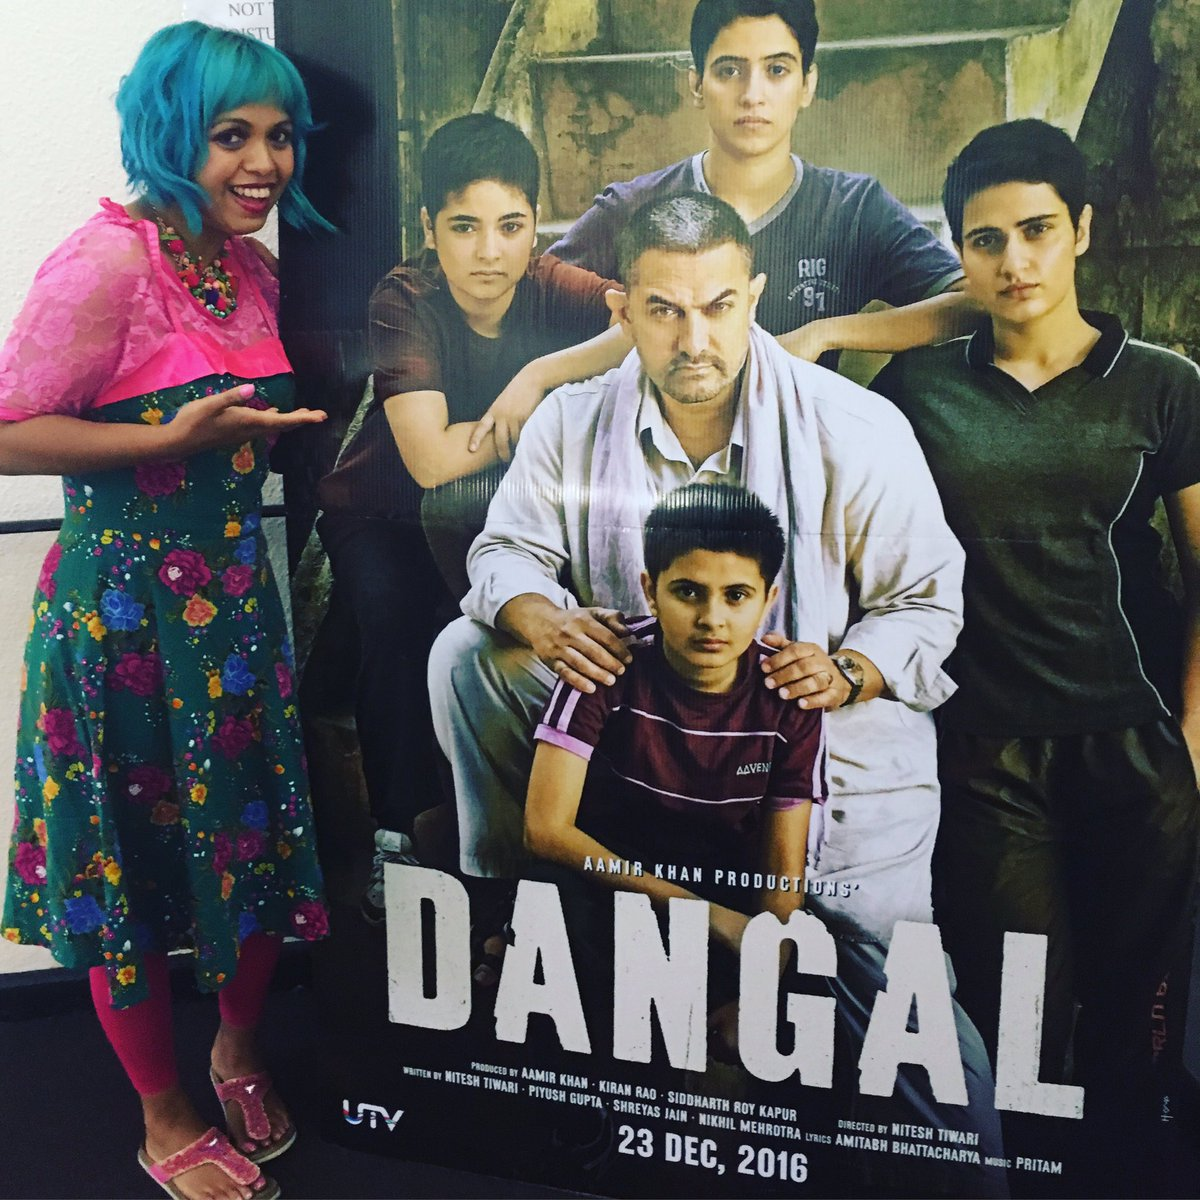 Spotted at #BoleynCinema in East London the poster for #AmirKhan's big 2016 release #Dangal bring on #Xmas https://t.co/cmhOVfCoMO